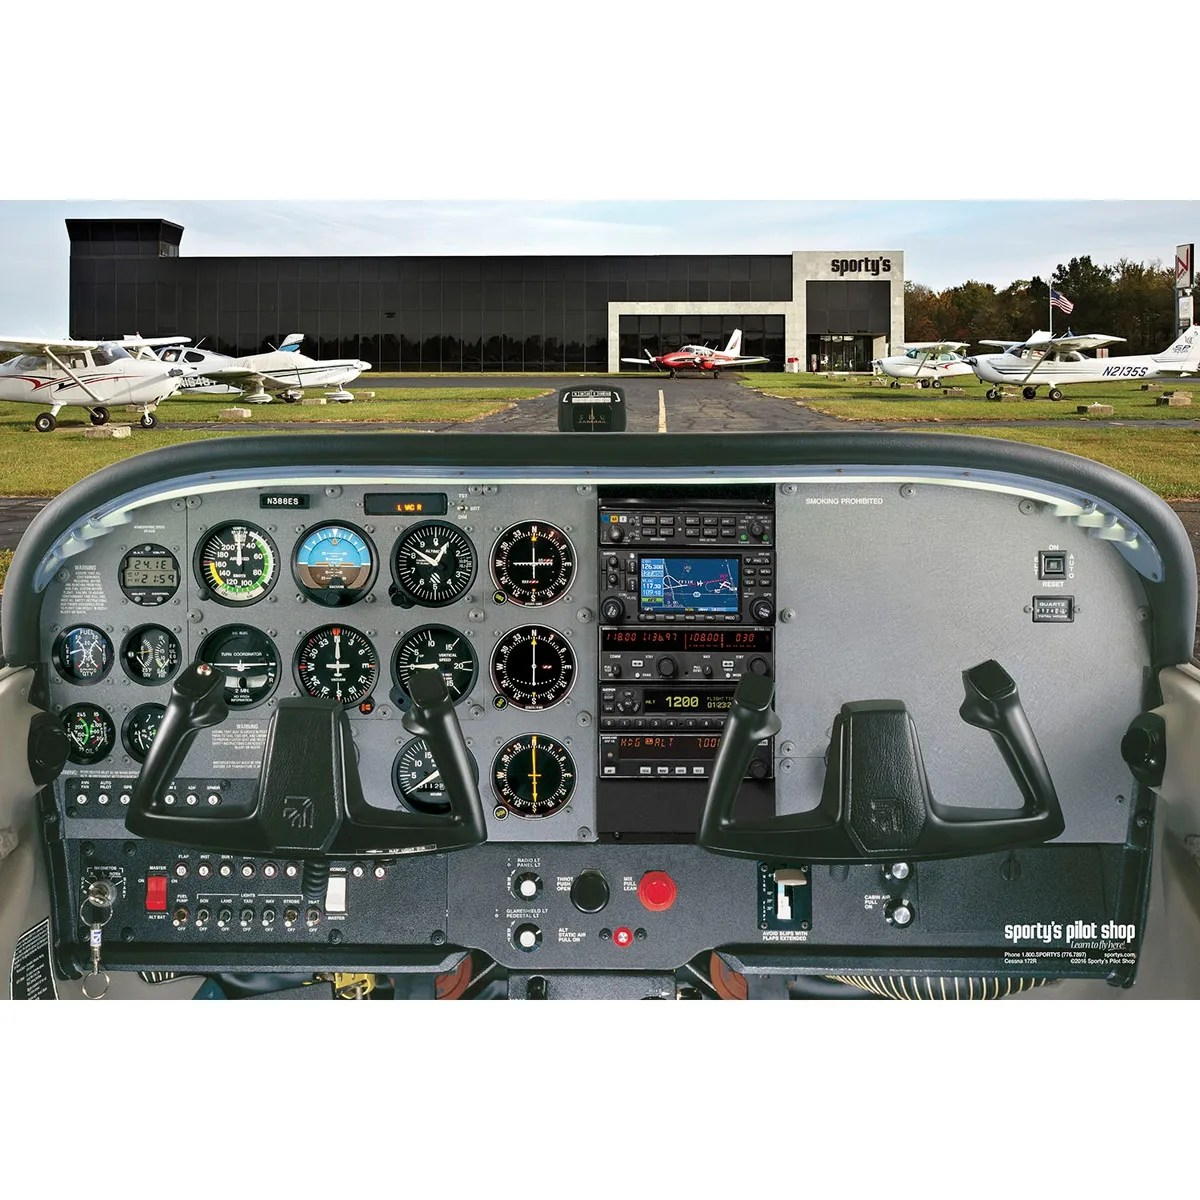 cessna 172 dashboard diagram viper max winch wiring free poster from sporty s pilot shop